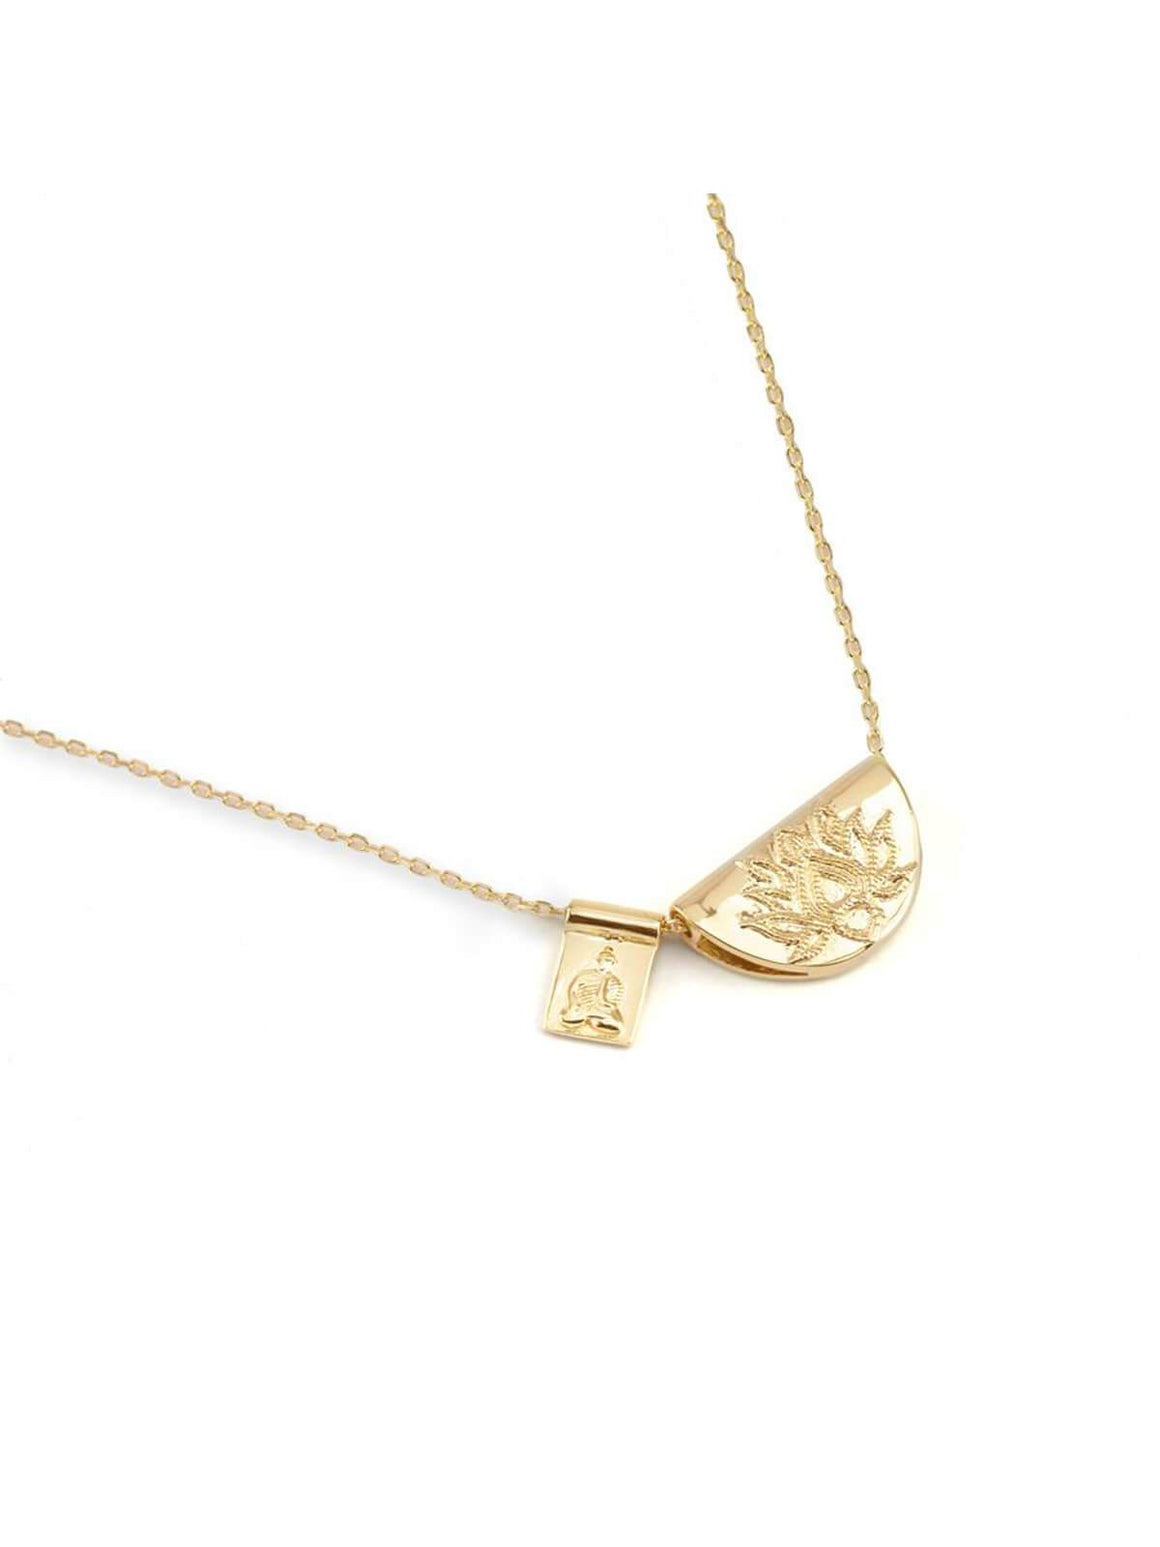 By Charlotte Gold Lotus Little Buddha Necklace | Perlu